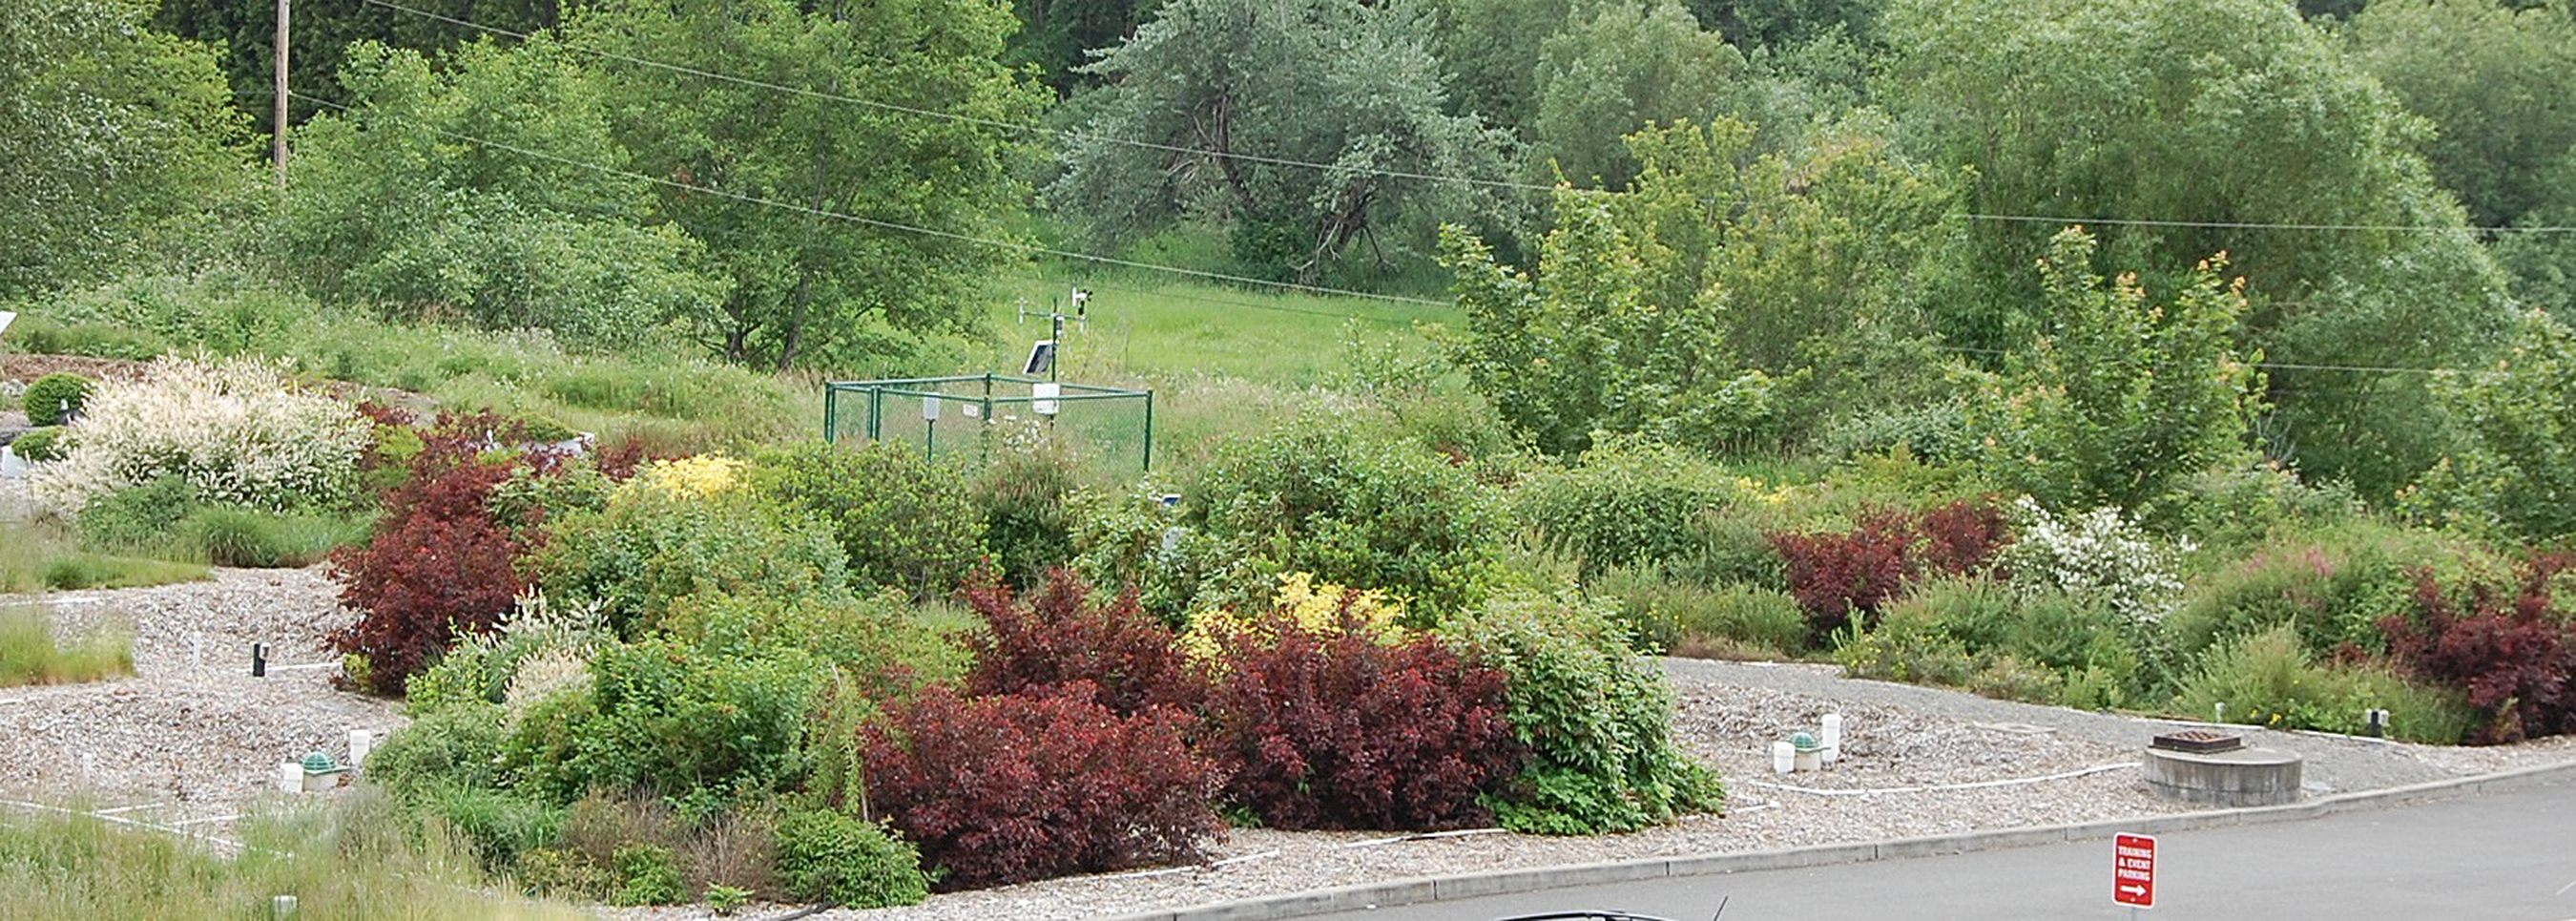 Rain Gardens Brighten Up The Landscape At WSUu0027s Stormwater Center At The  Puyallup Research And Extension